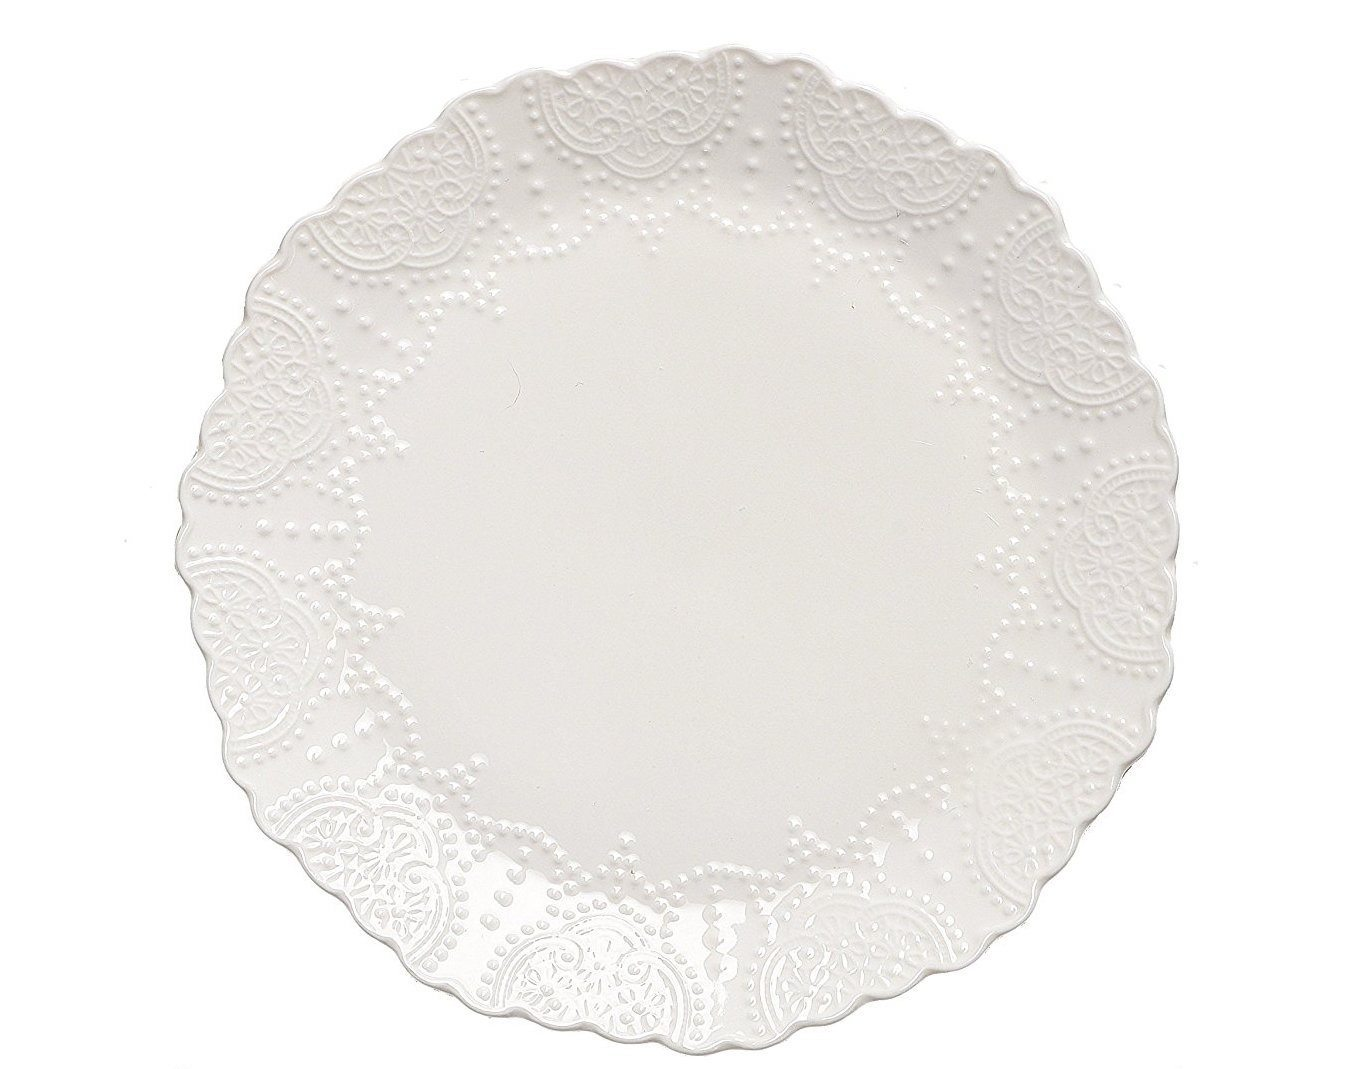 Thanksgiving Tablescape   Entertaining In Your Apartment   Scalloped Embossed White Dinner Plates